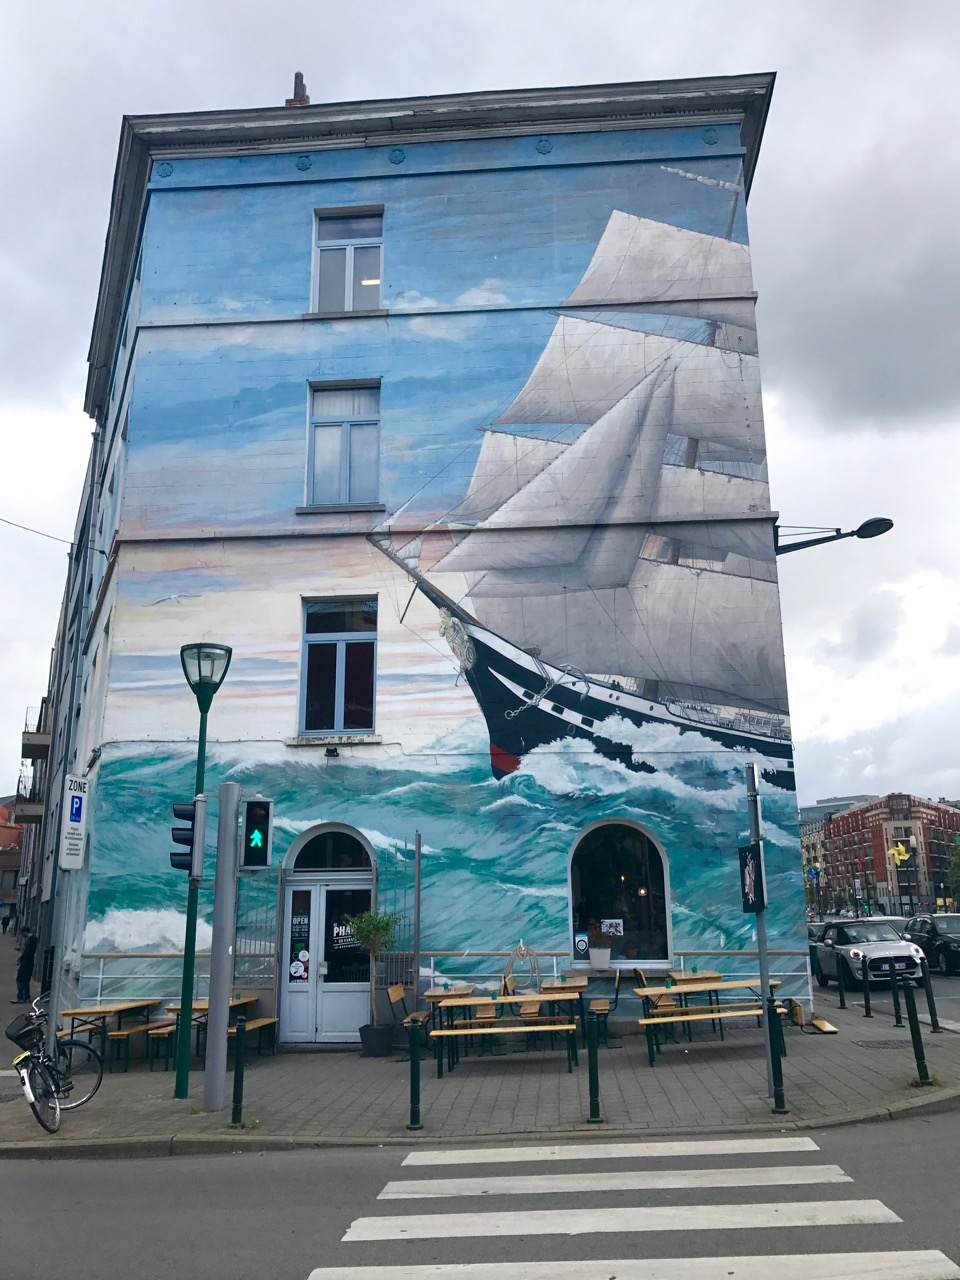 Brussels wins the award for most amazing street art, especially the comic book strip!!